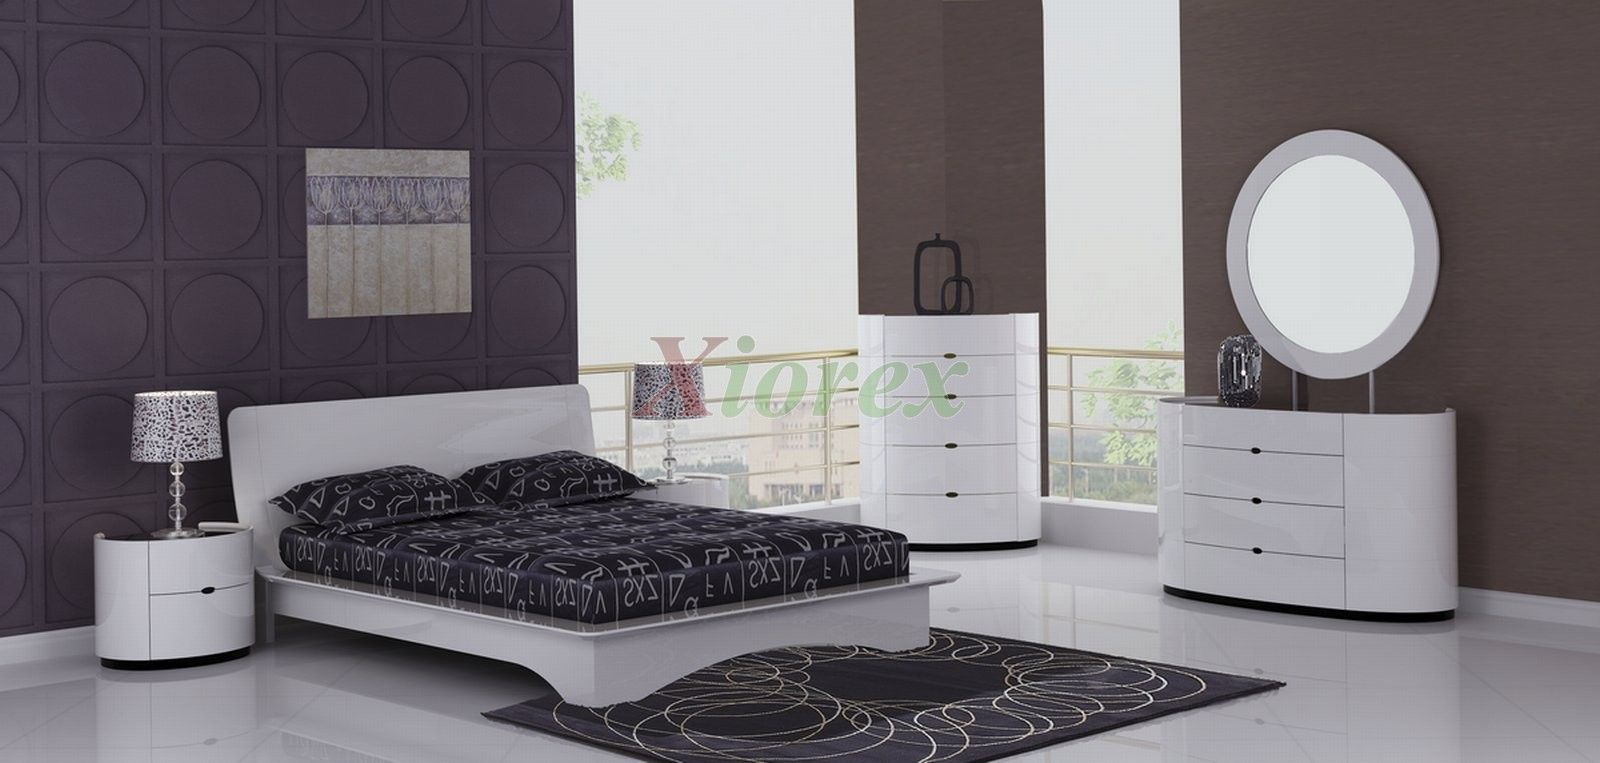 Eri All White Modern Bedroom Furniture Sets Canada Xiorex Eri All for White Modern Bedroom Sets